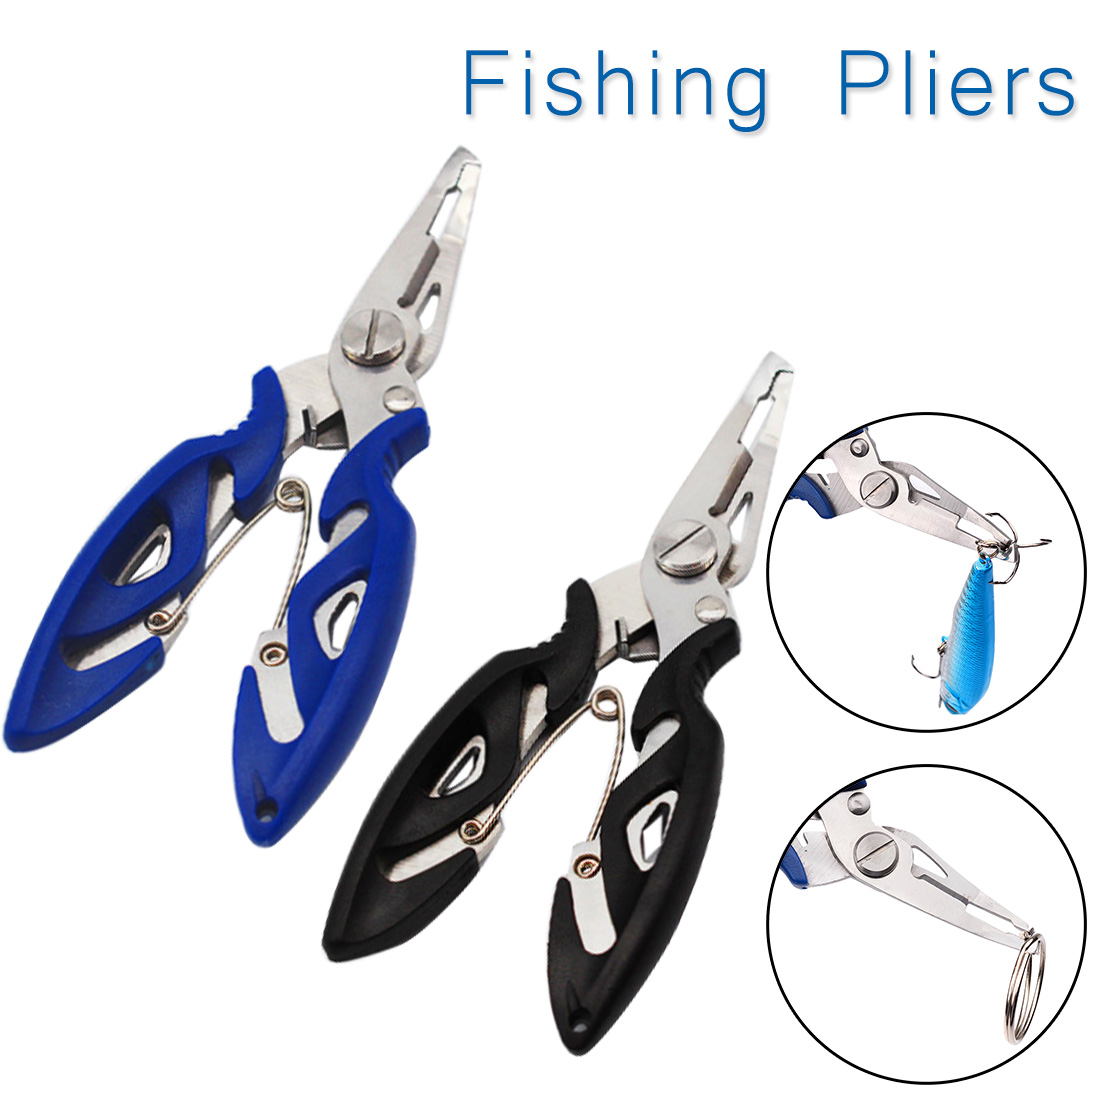 Details about  /Fishing Plier Scissor Braid Line Lure Cutter Hook Remover Tackle Tool Cutting Fi